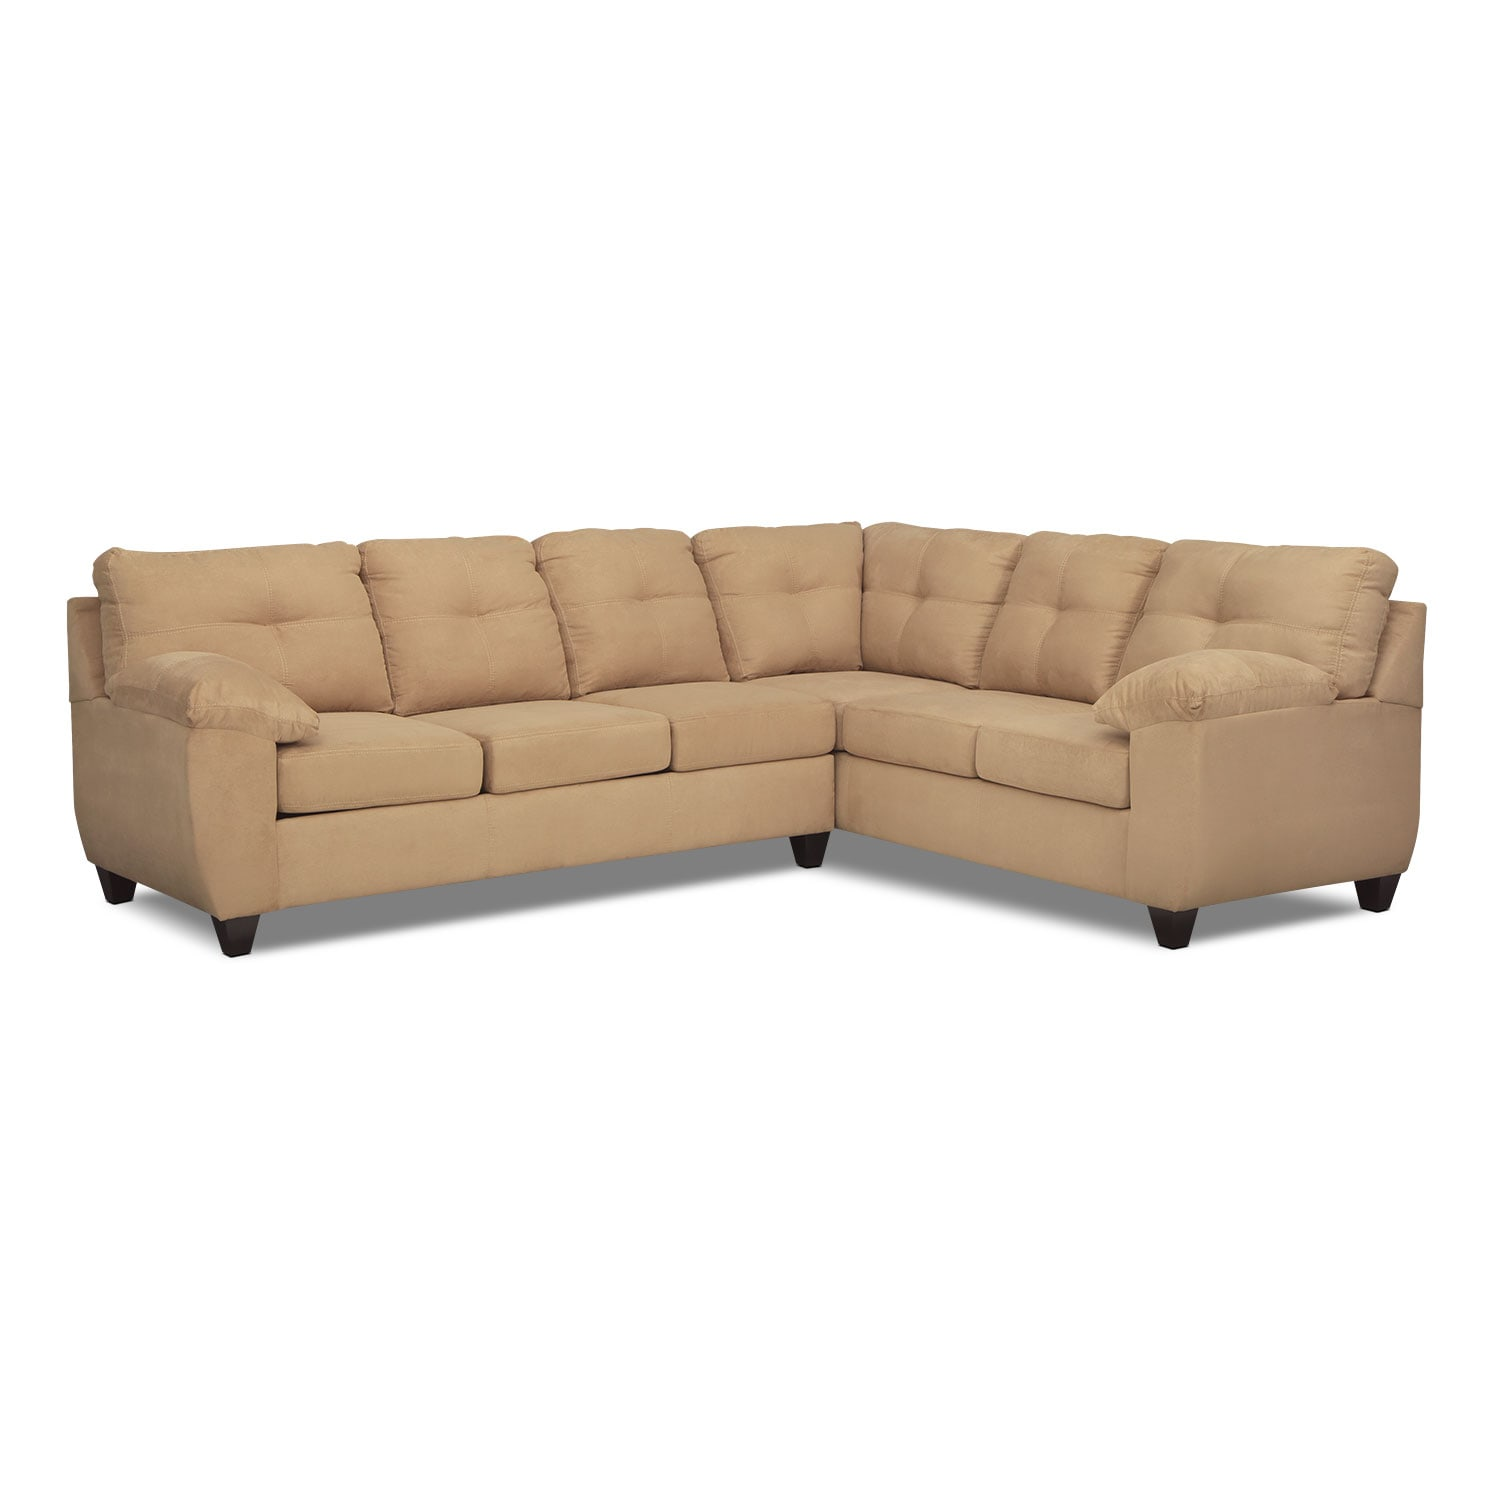 back of sofa facing fireplace diwan set price in stan ricardo 2 piece sectional with right camel